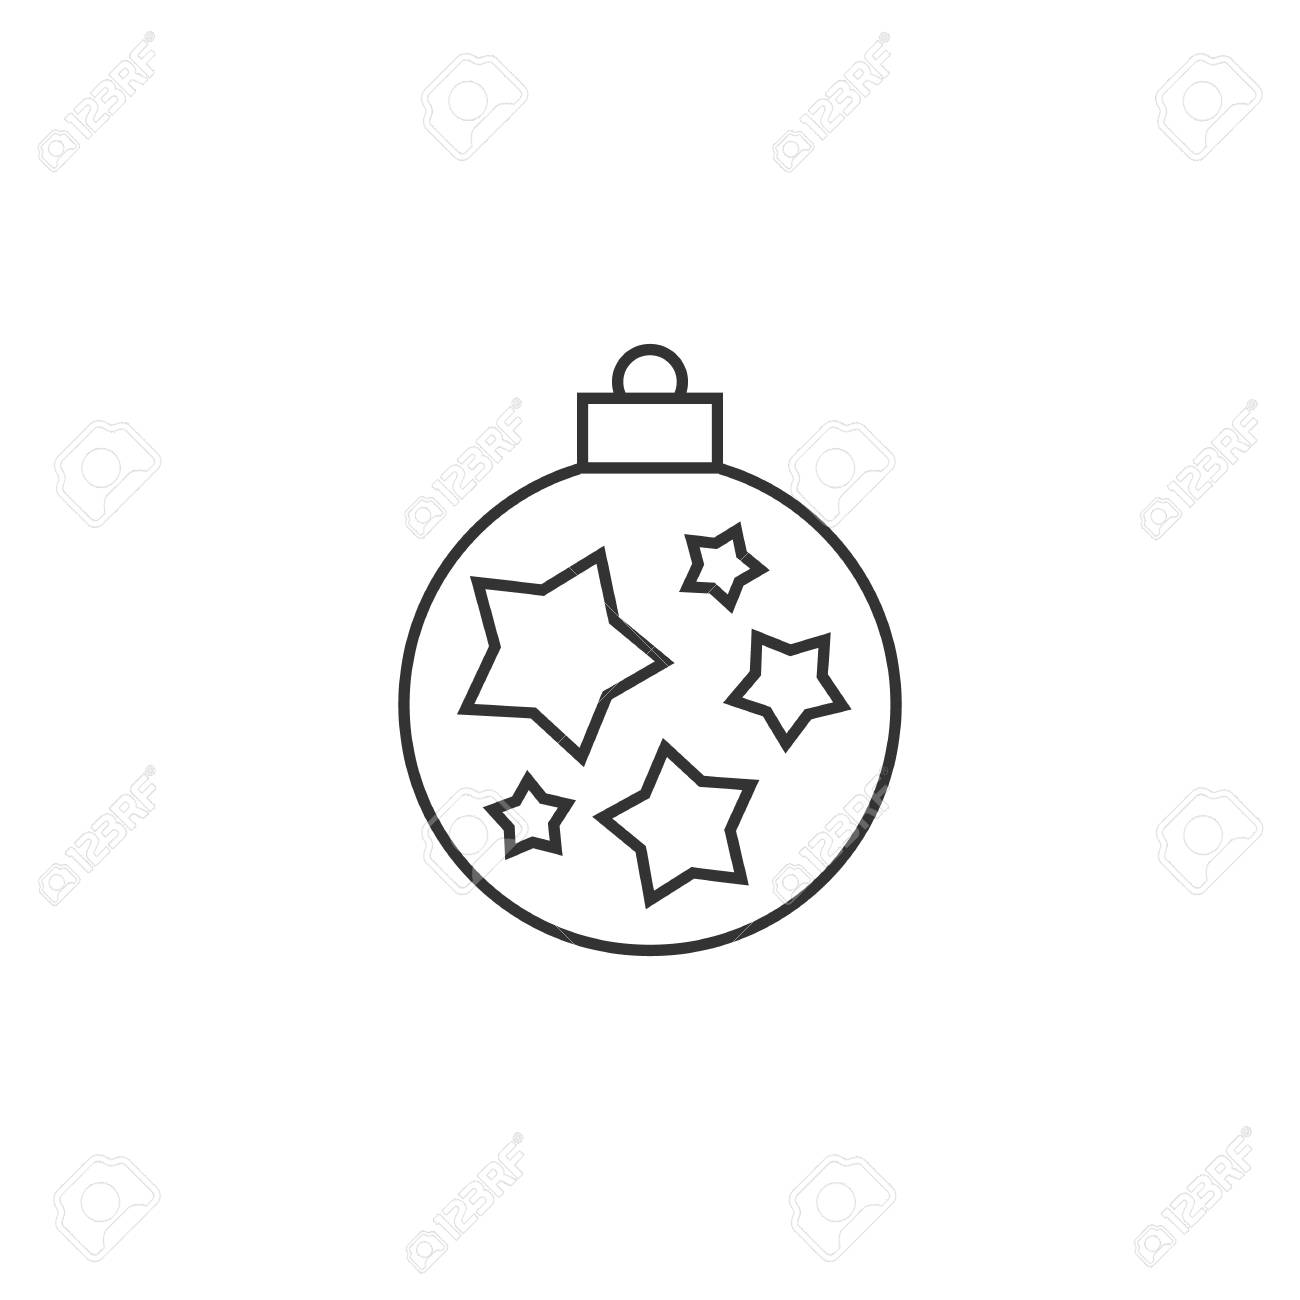 Vector Christmas Ornament Outline